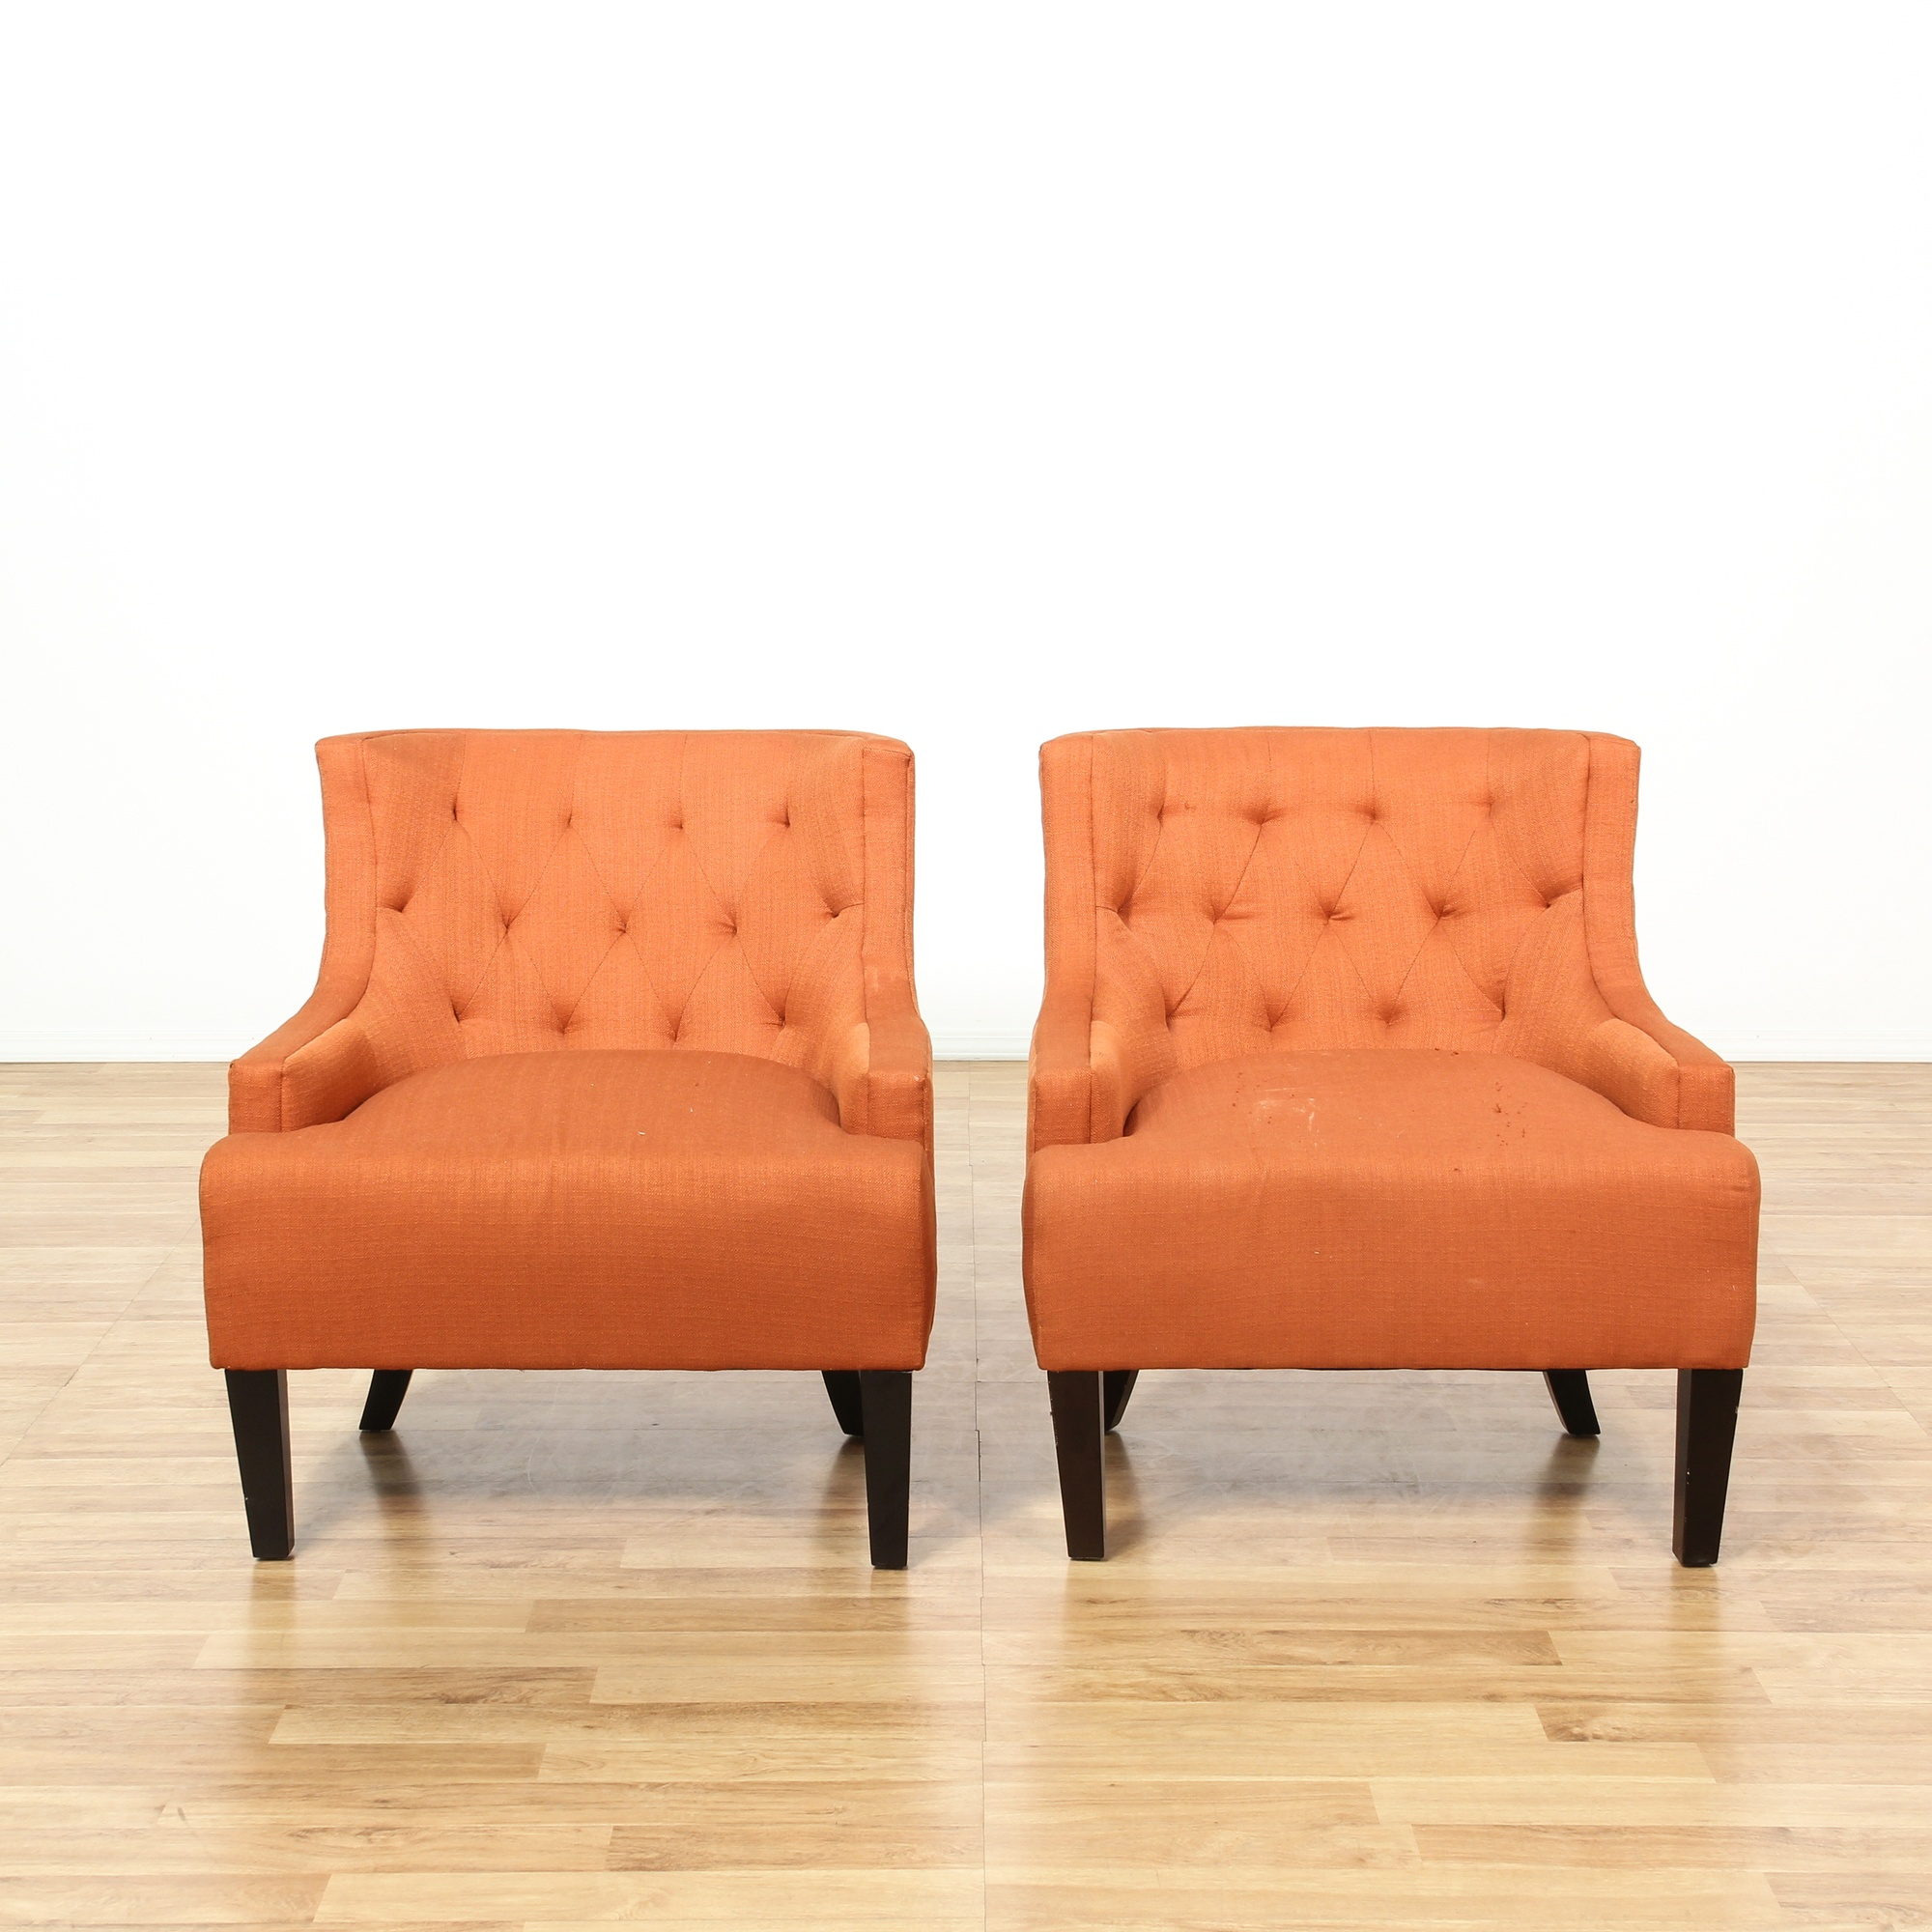 Curved Wood Bird Fabric High Back Accent Chair: Orange Tufted Curved Back Accent Chairs